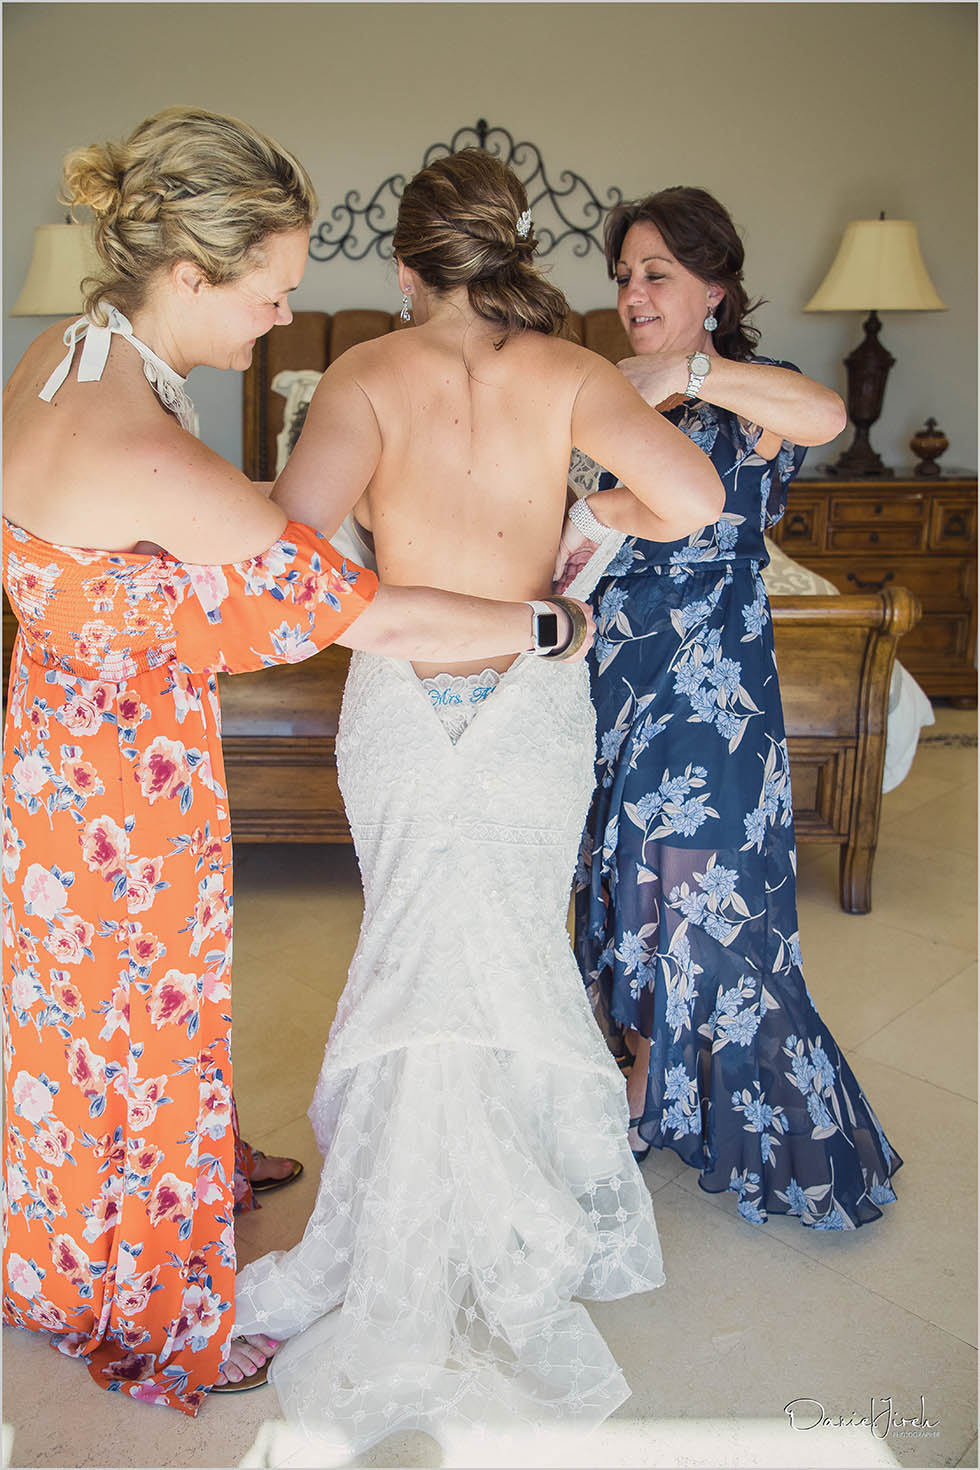 mom and best friend helping bride with the wedding dress